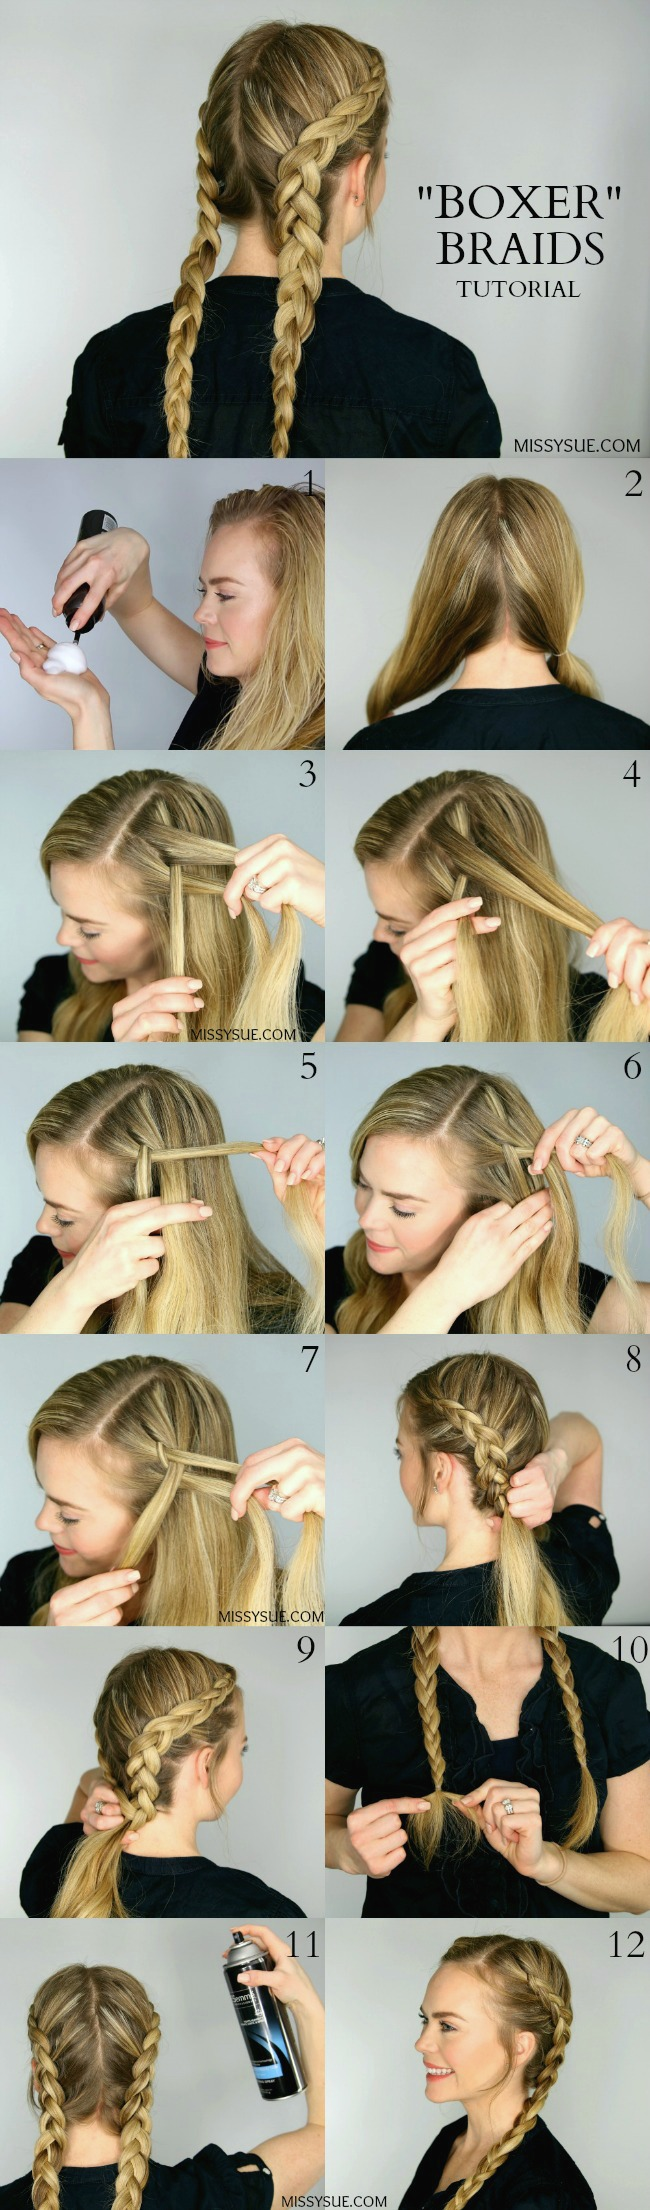 9-10-Quick-Back-To-School-Hairstyles